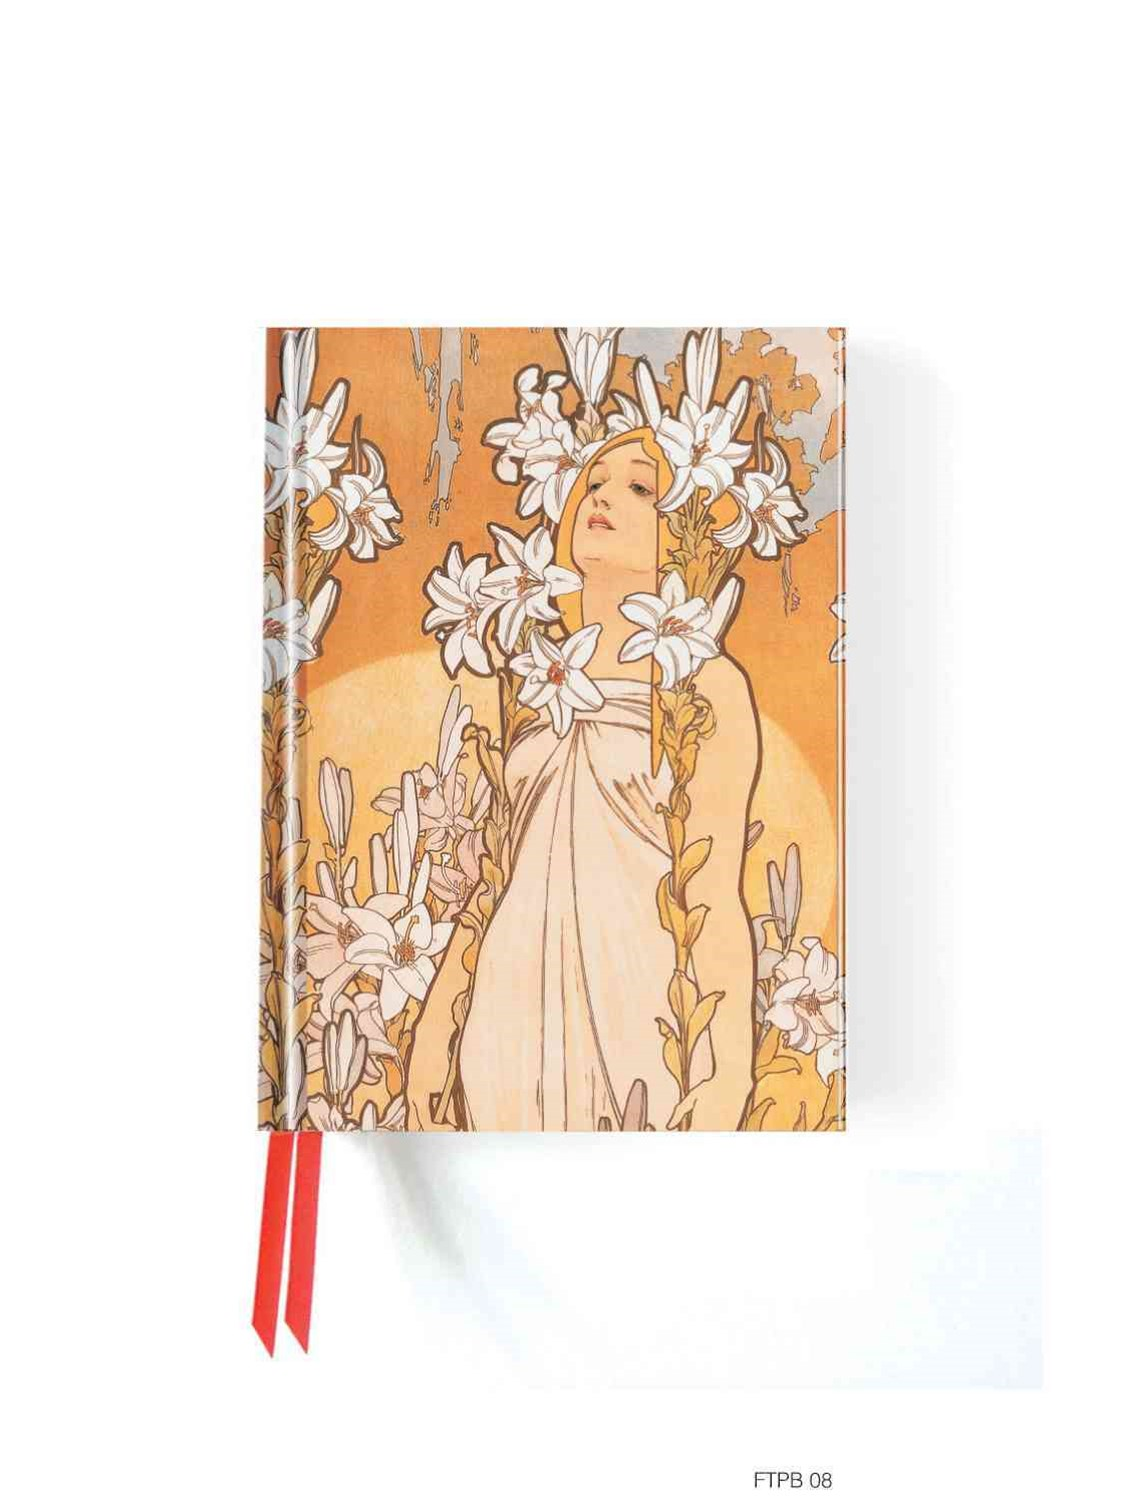 Foiled Pocket Journal #8: Alphonse Mucha The Flowers, Lily